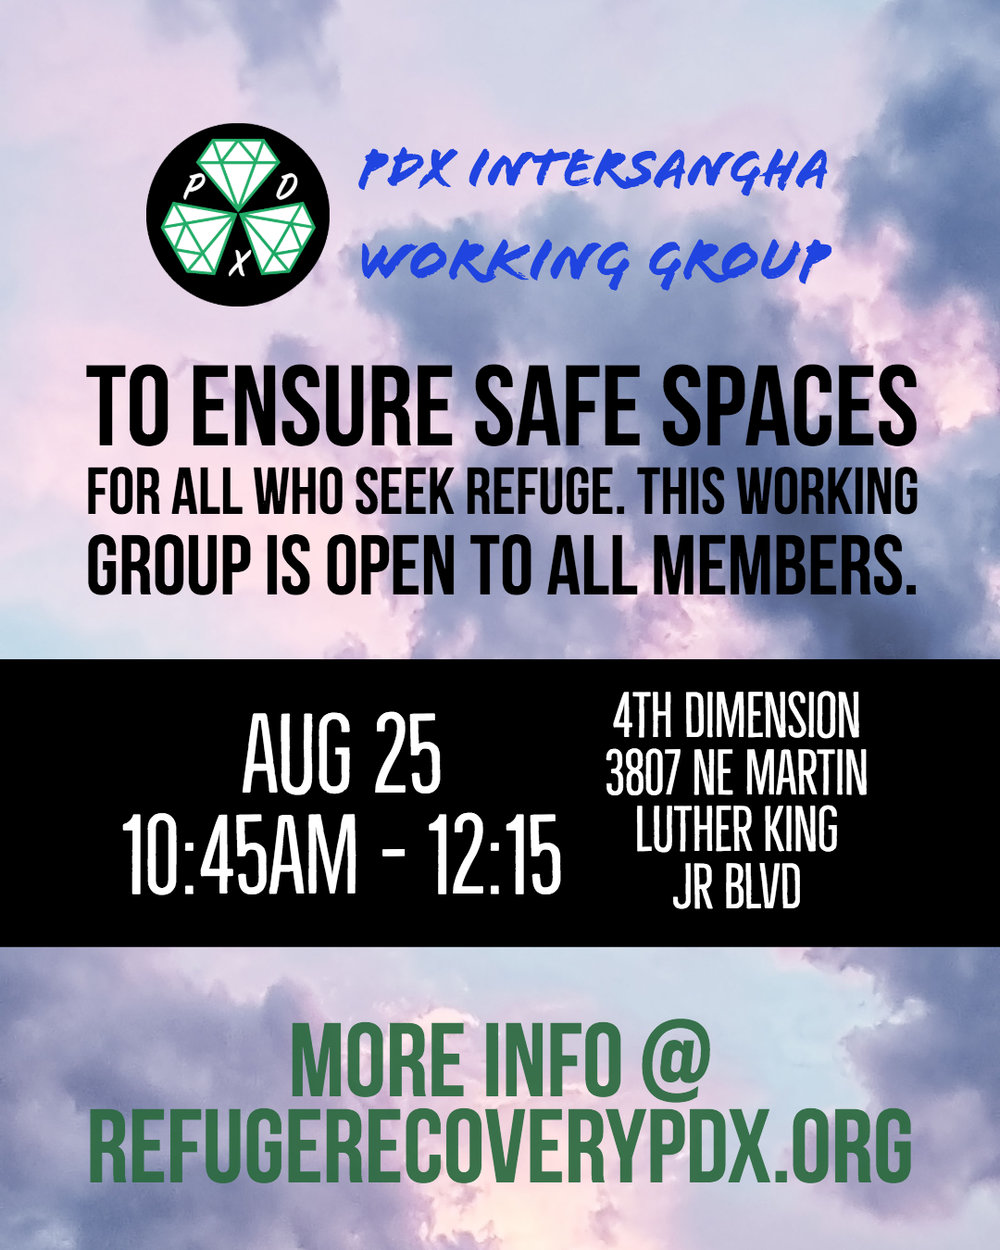 - Please join us at the next one on August 25!